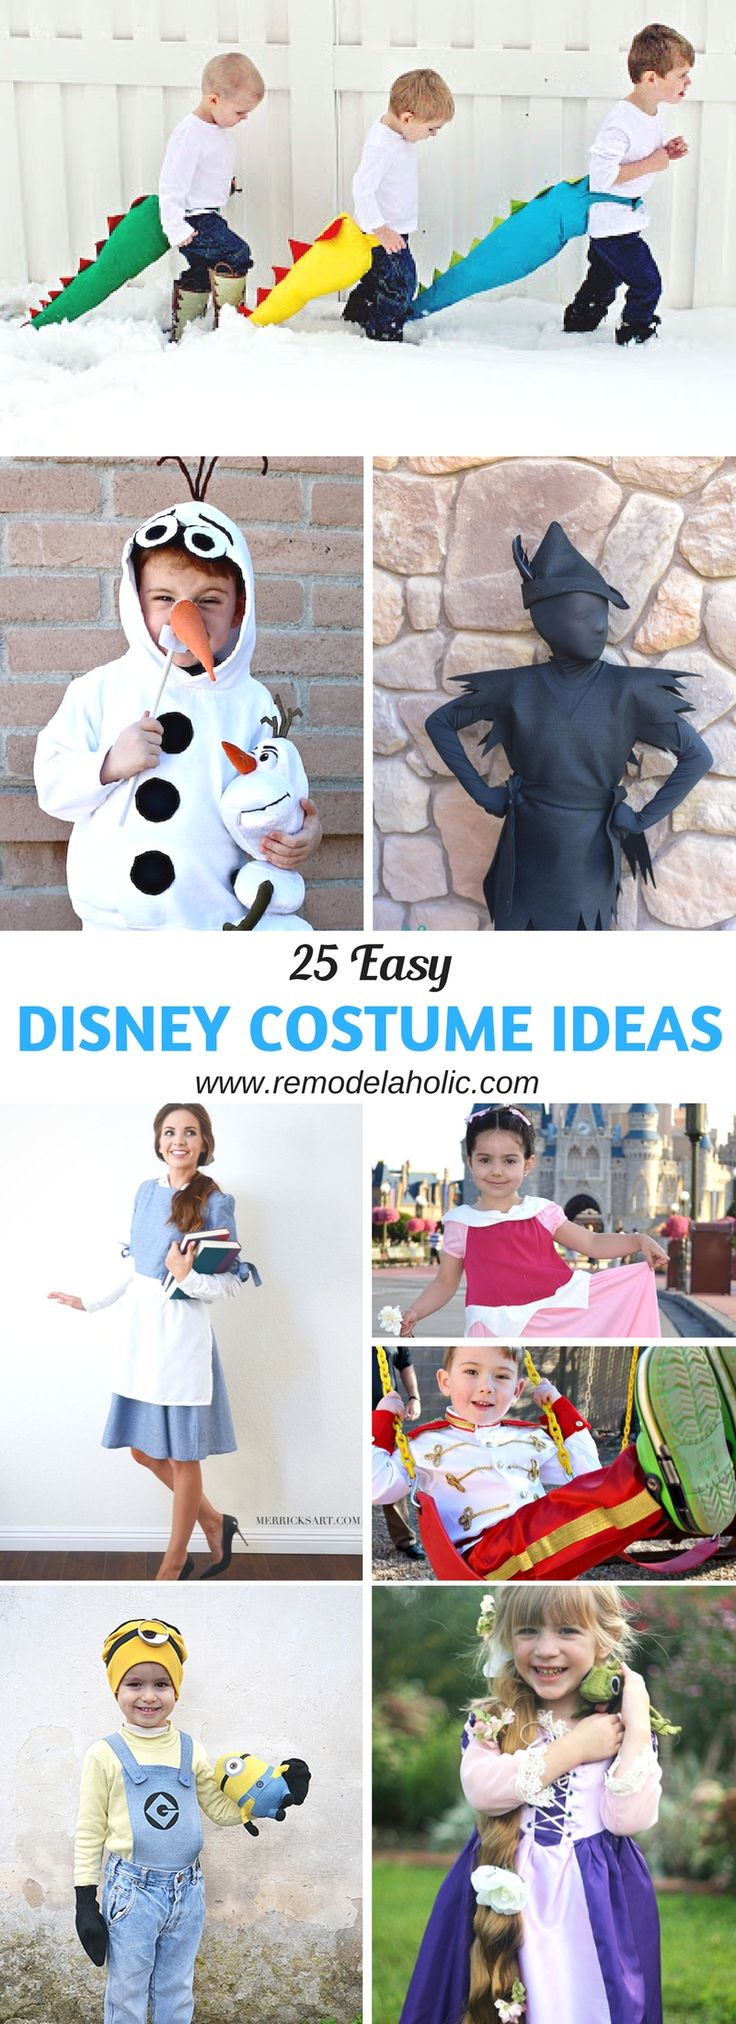 25 easy disney costume ideas - List Of Halloween Costumes Ideas